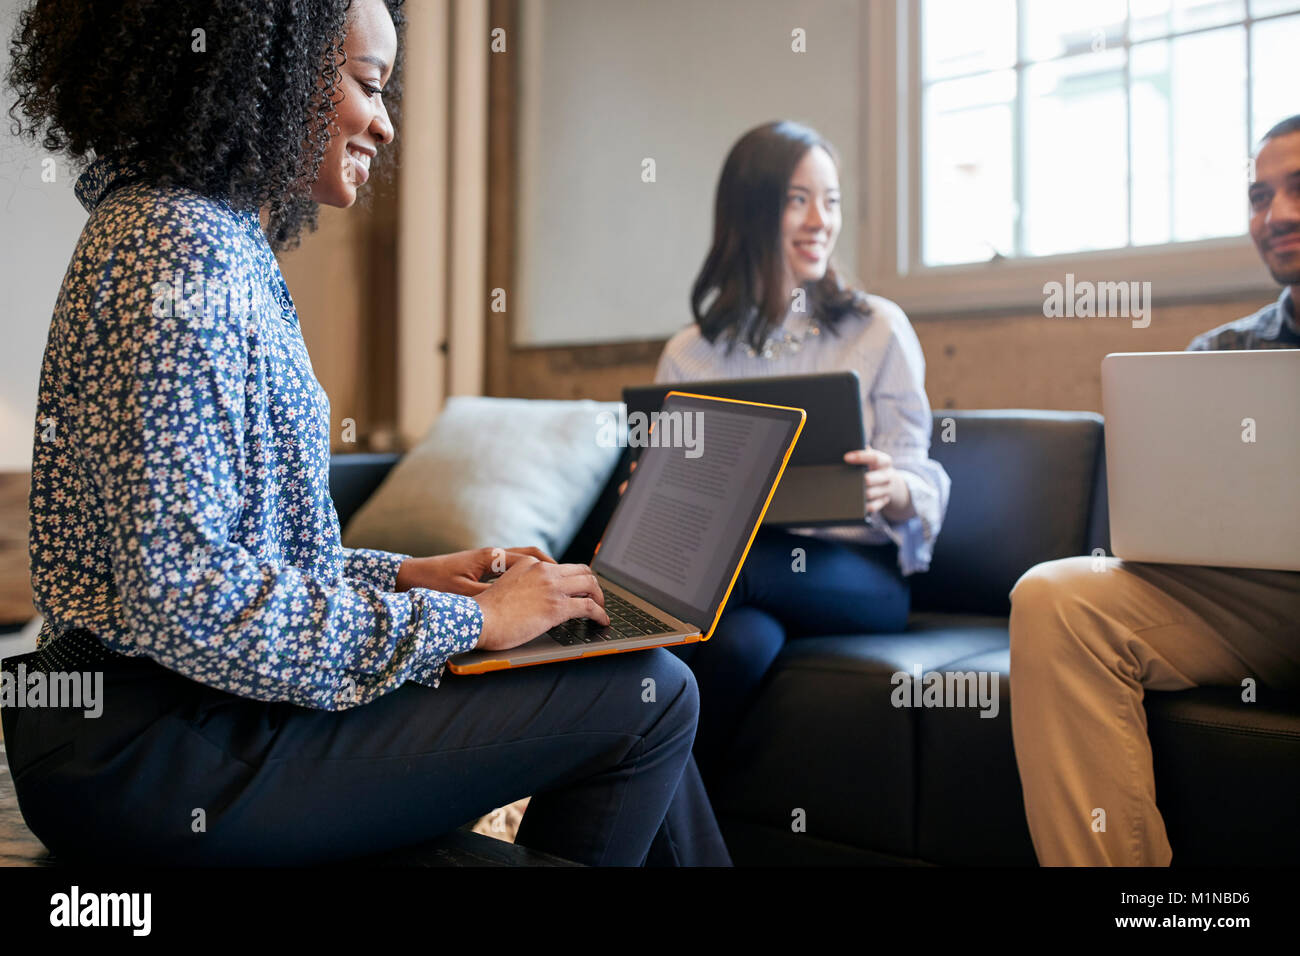 Smiling colleagues working together with laptops, close up - Stock Image